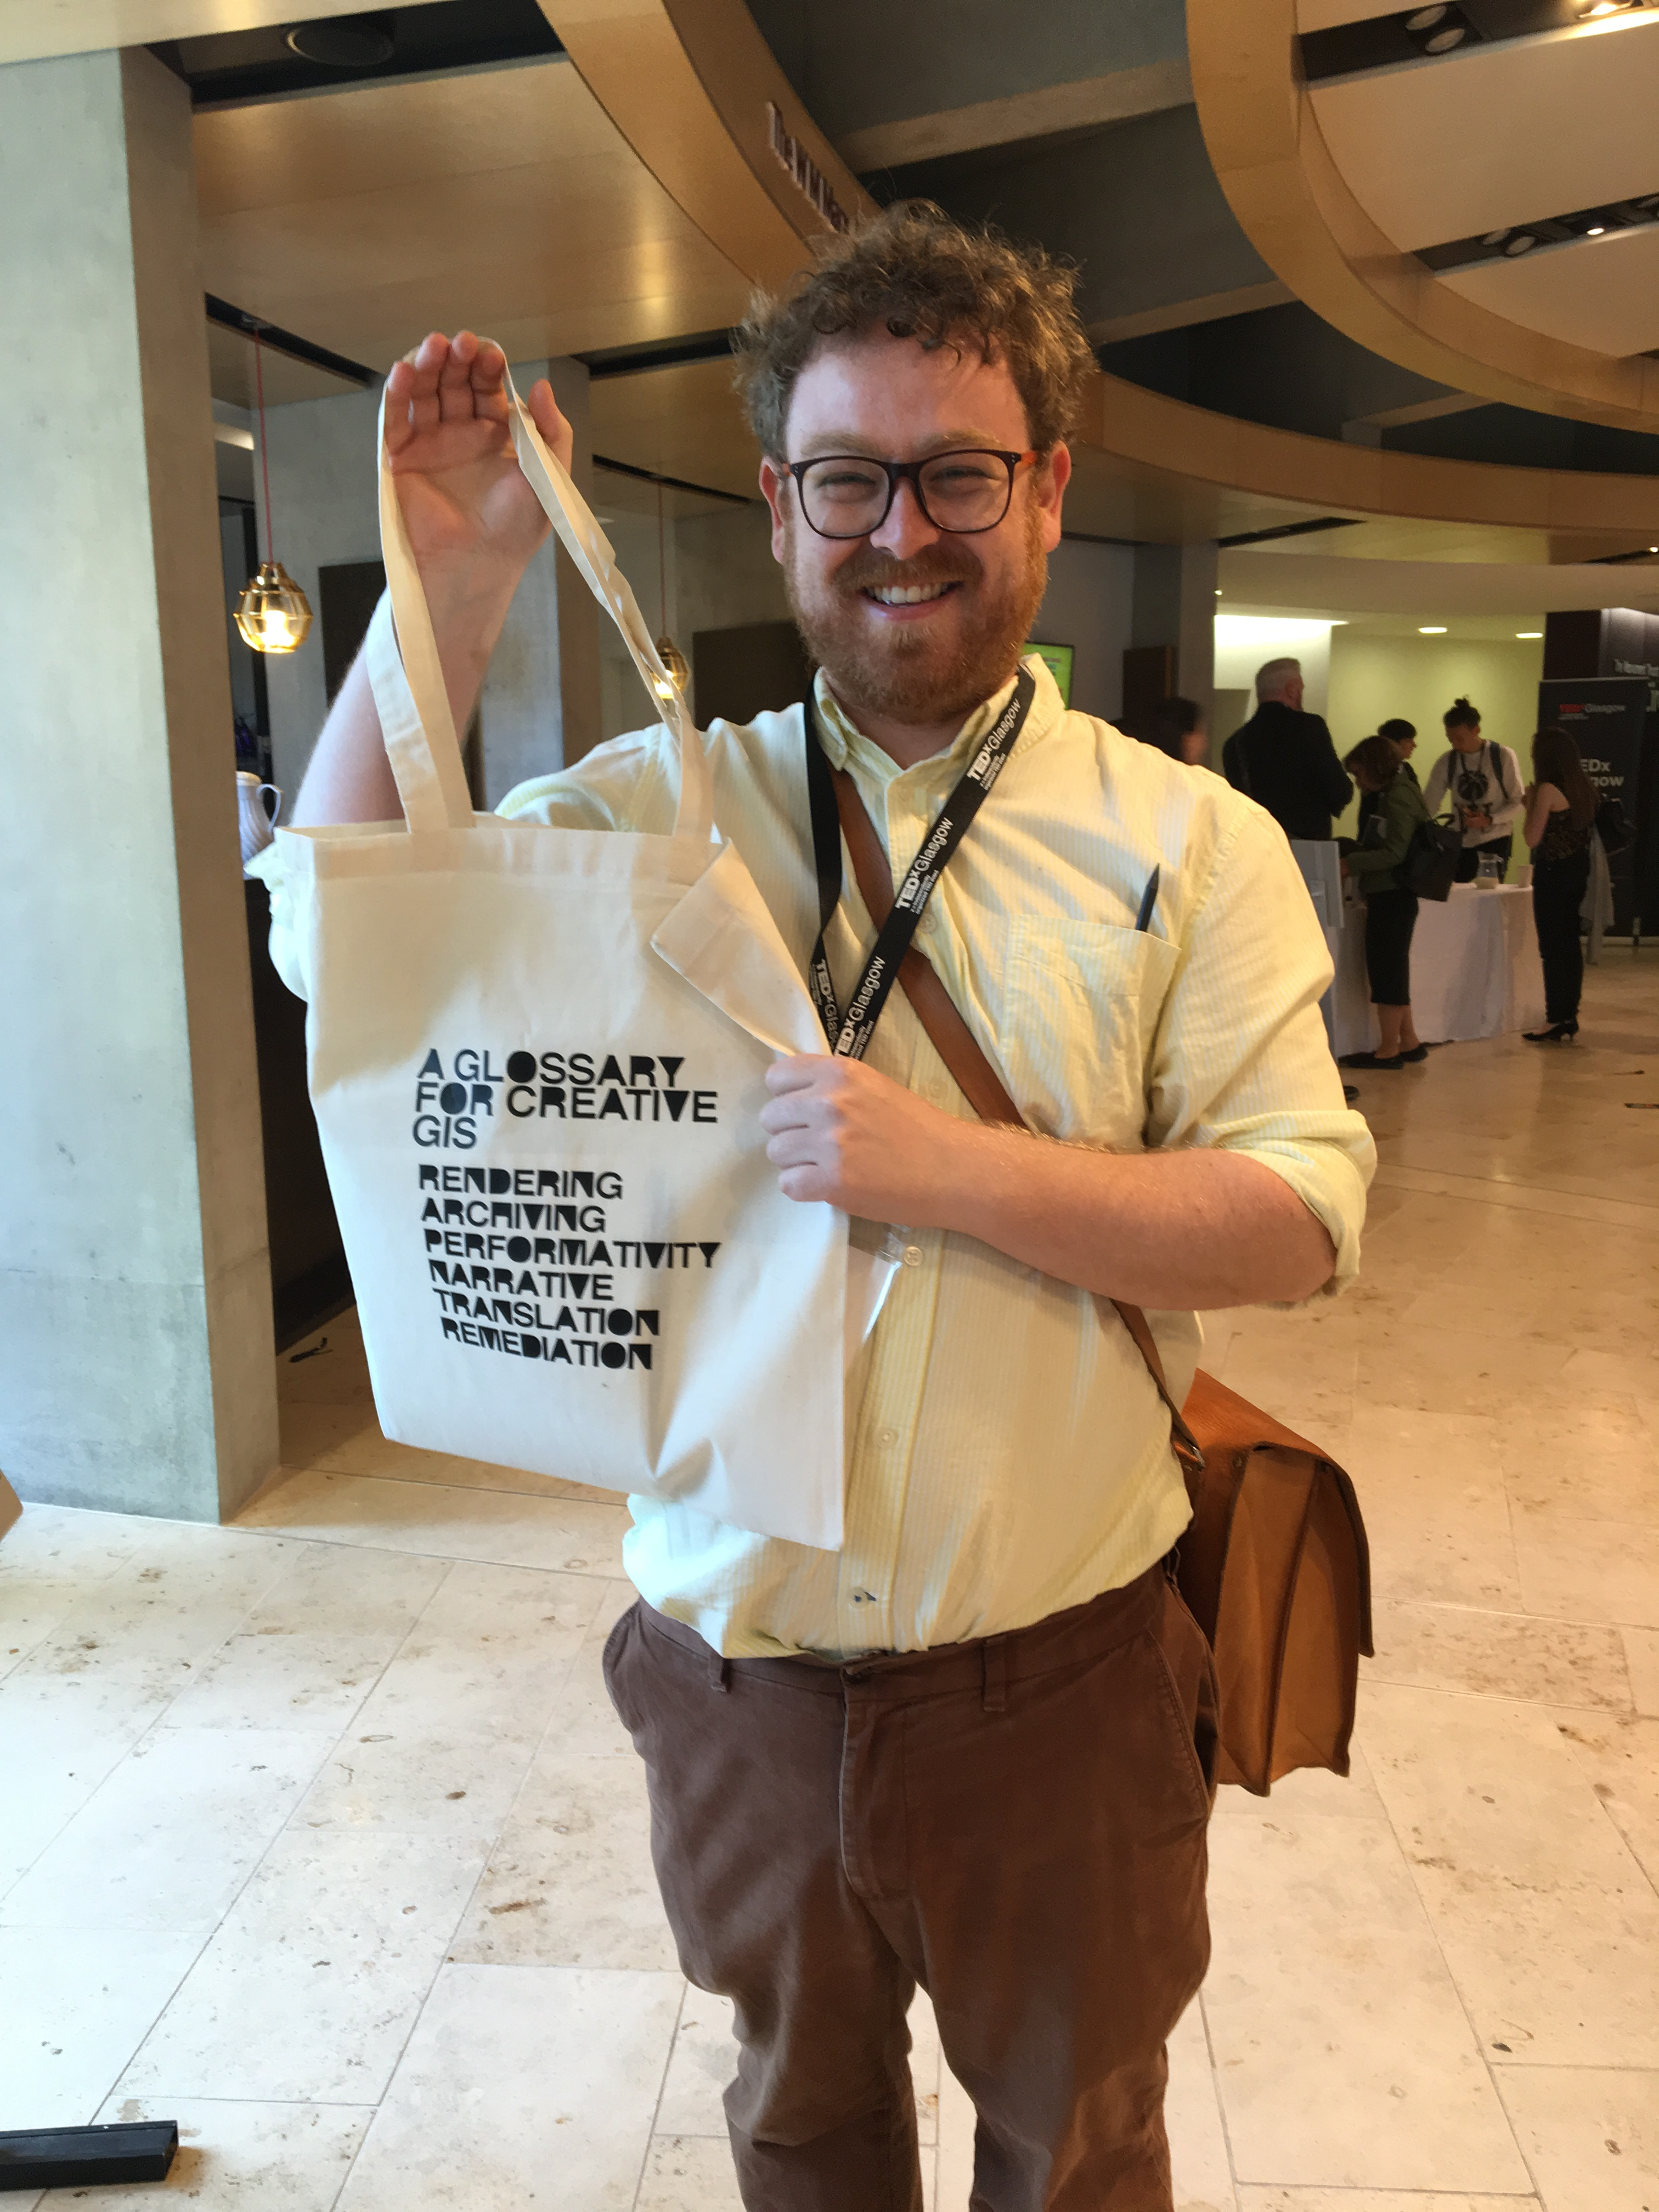 Photo of Phil Nicholson holding tote bag created at TEDx